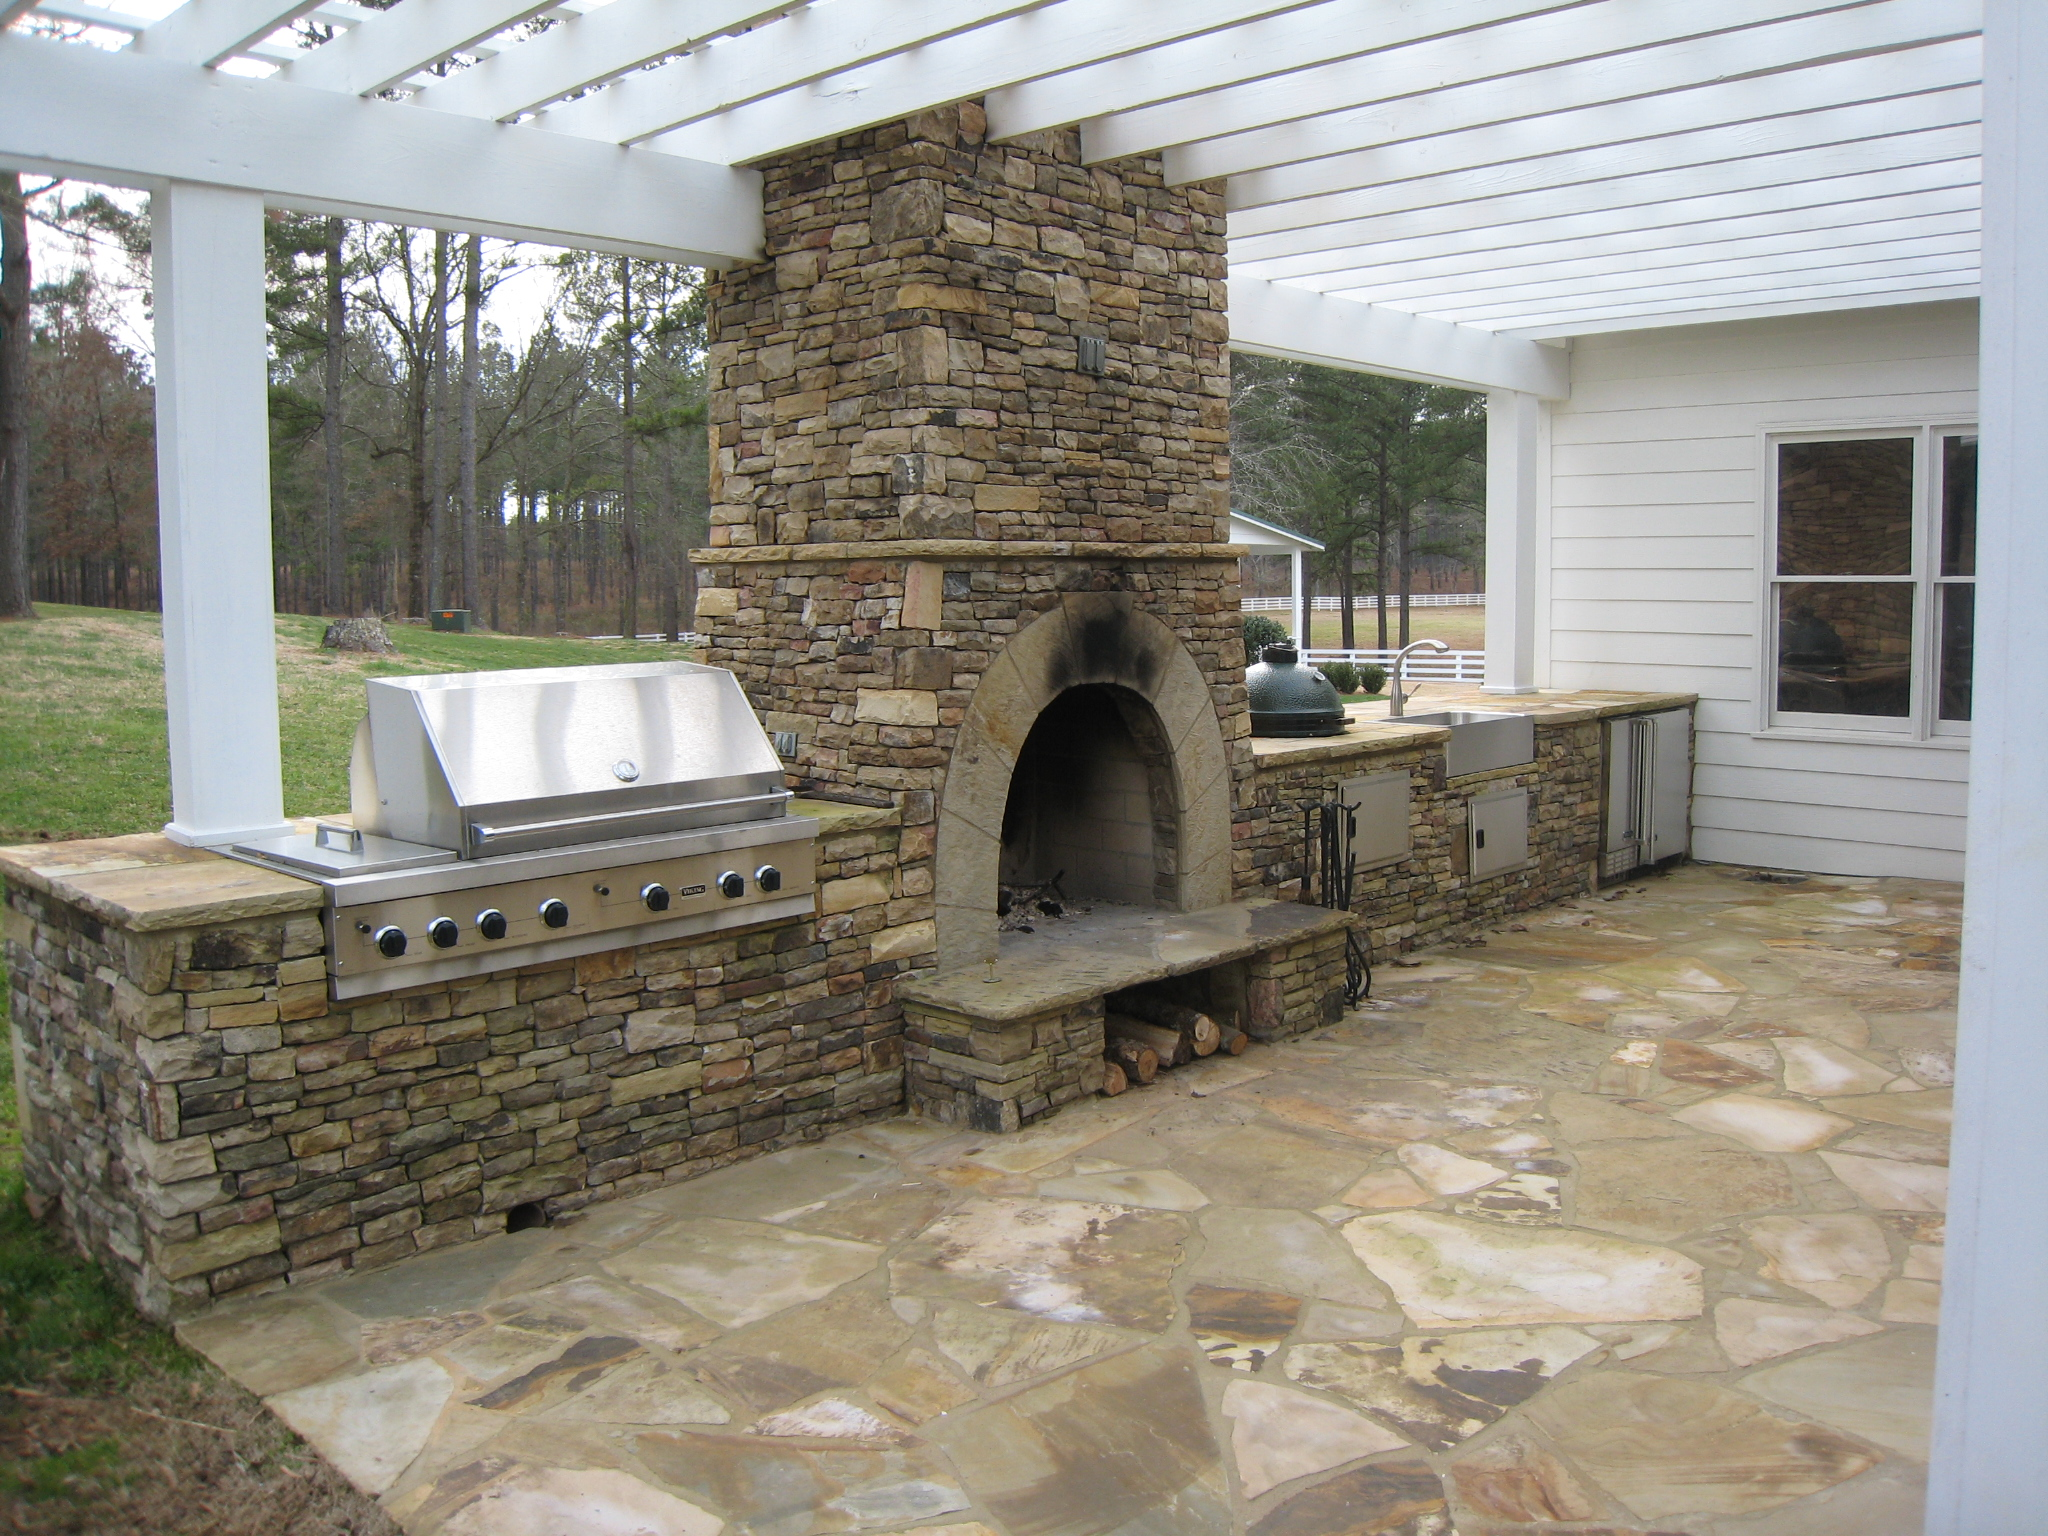 Outdoor Kitchens & Stone Bbq Design  Davel Construction. Painting Basement Cement Floor. Epoxy Floor Paint For Basement. Basement Underpinning. One Floor House Plans With Basement. Basement Designs Pictures. How To Eliminate Musty Smell From Basement. Basement Parking Section. Finished Basement Ceiling